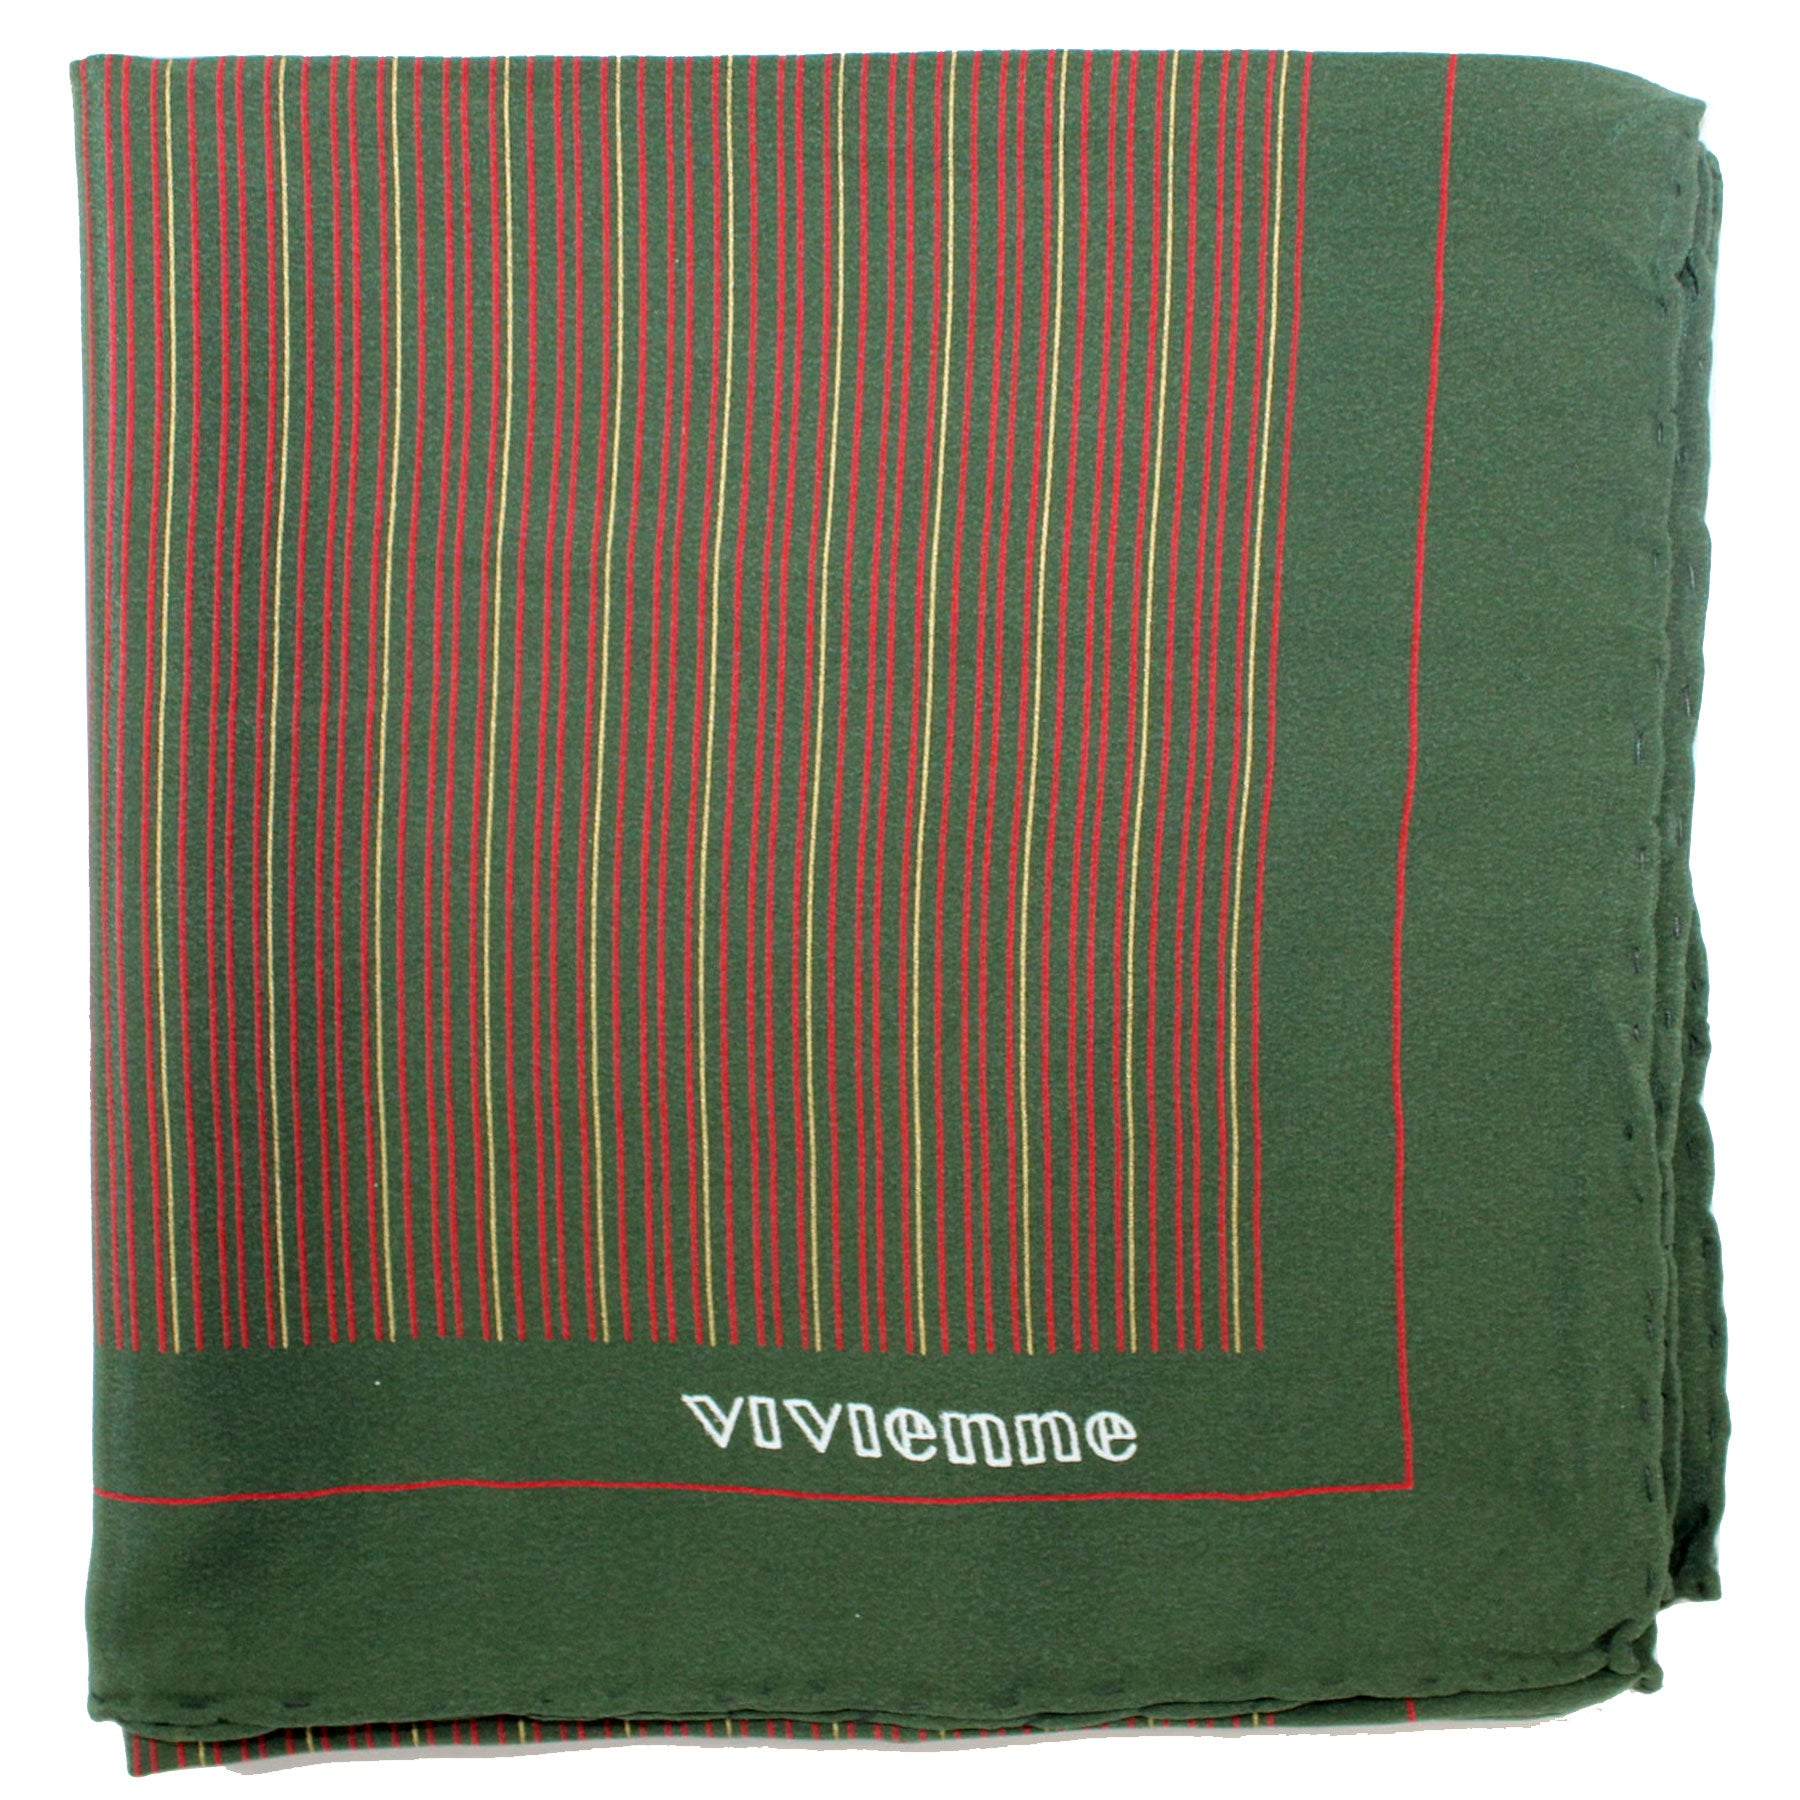 Vivienne Glamour Scarf Green Stripes - Large Silk Square Scarf